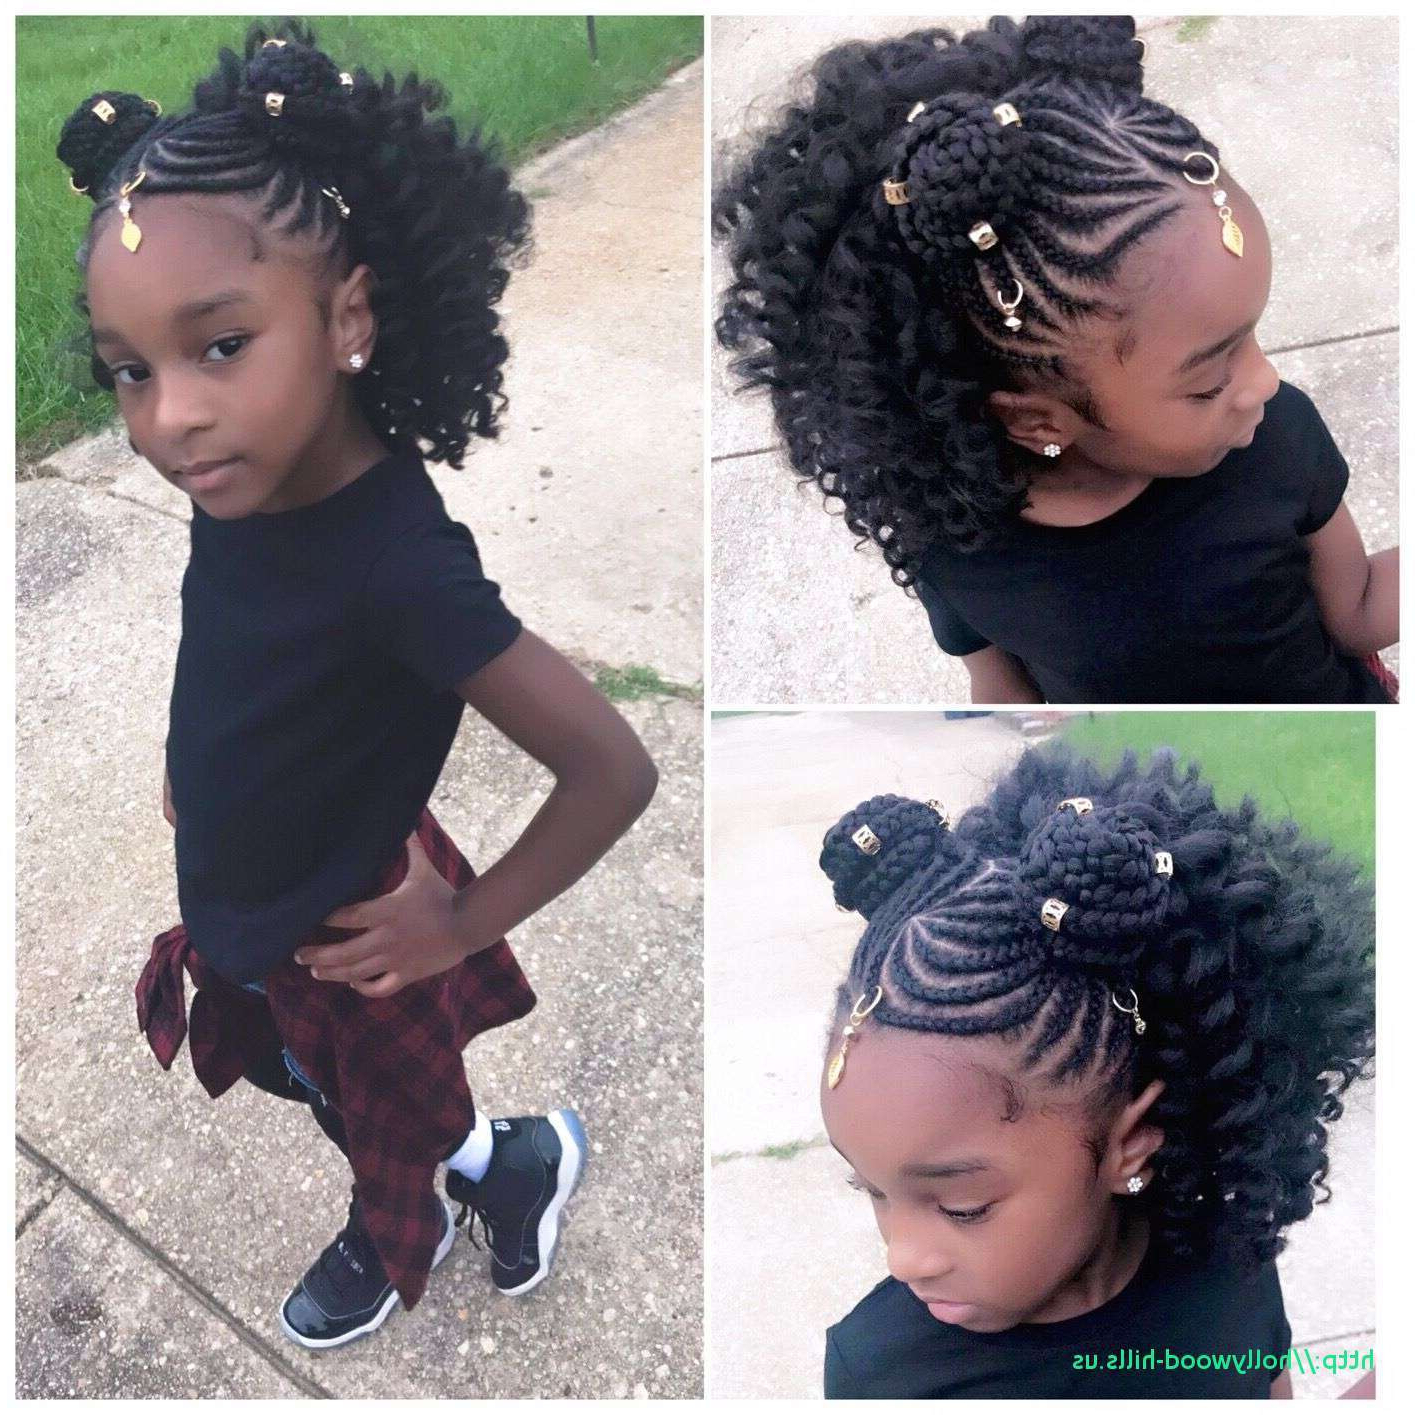 Excellent Black Baby Hairstyles With Short Hair Alwaysdc With Regard To Black Baby Hairstyles For Short Hair (View 4 of 25)